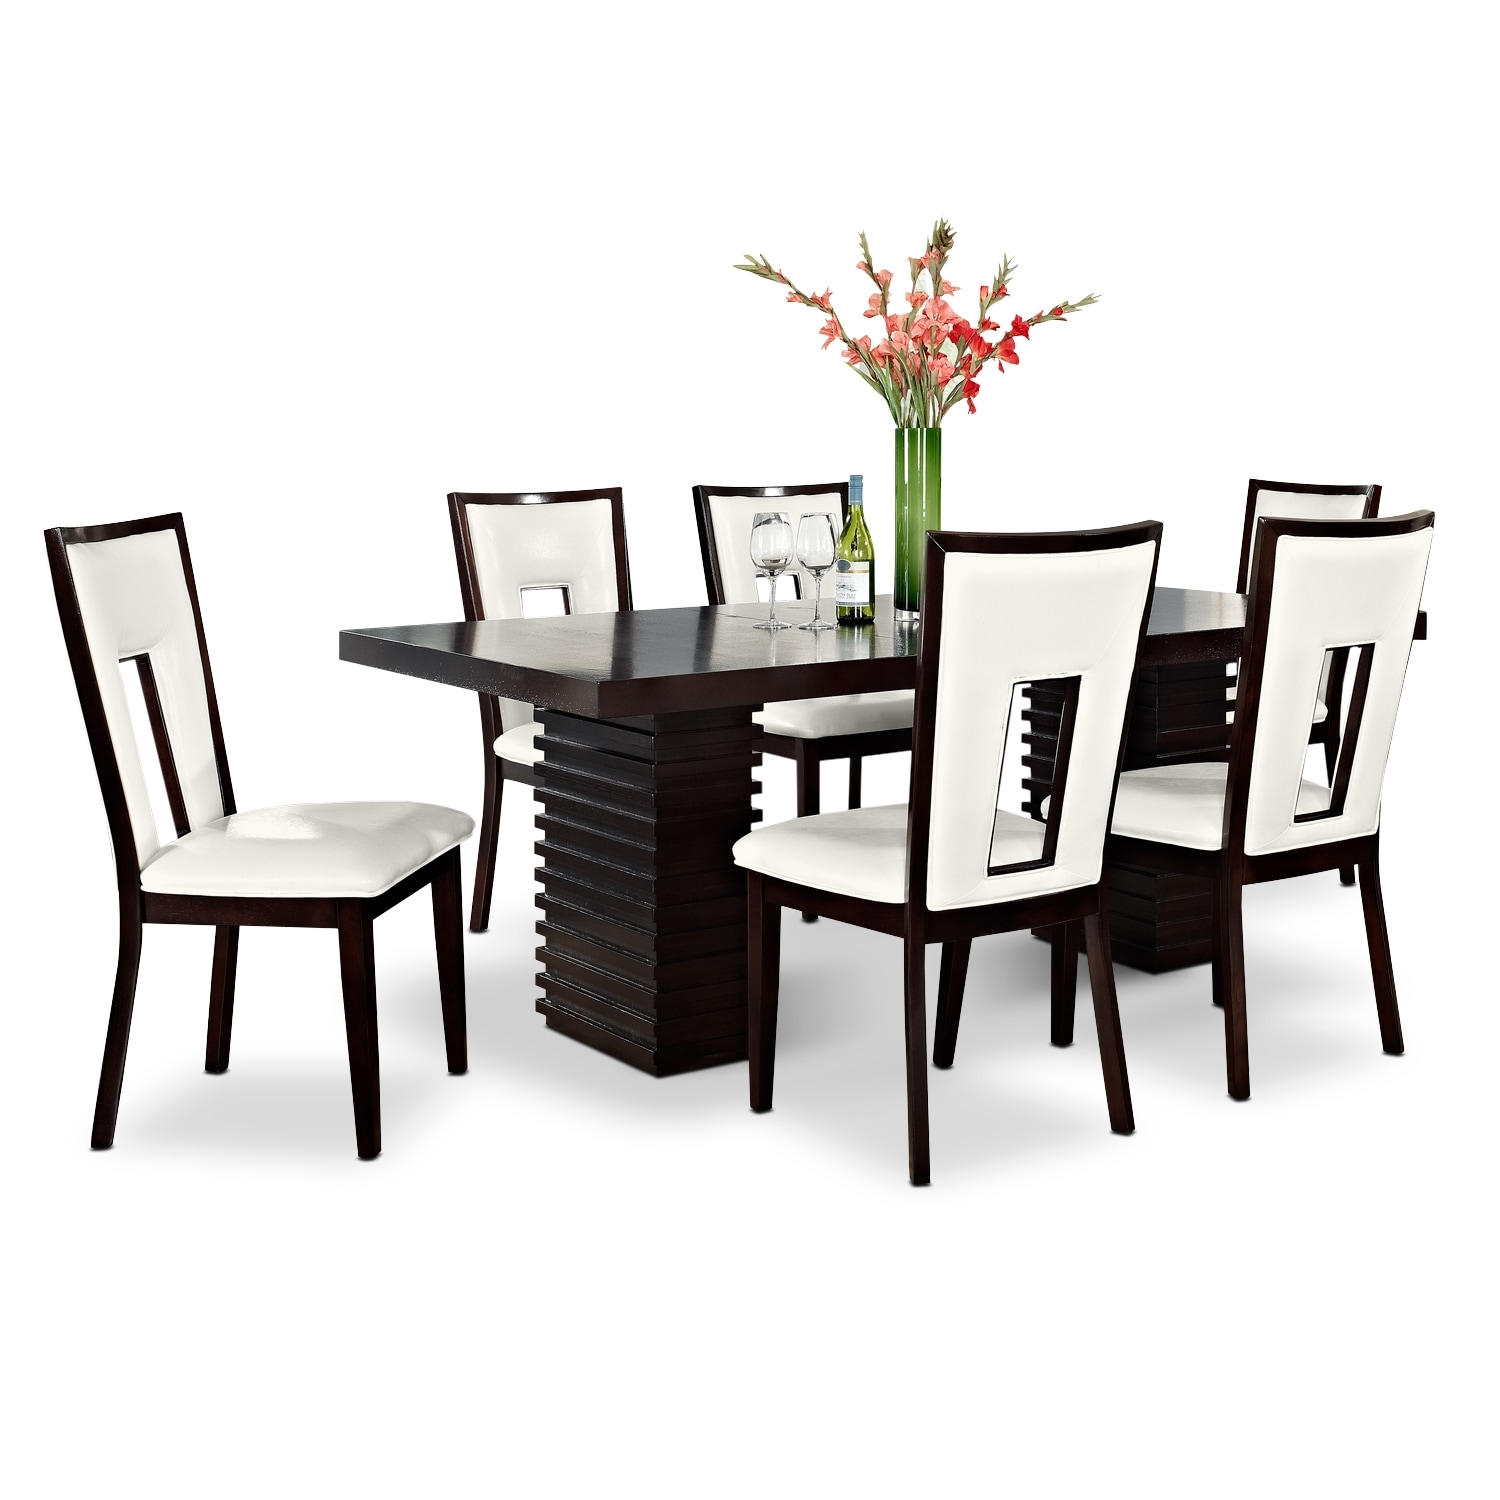 Paragon Madera II 7 Pc. Dining Room